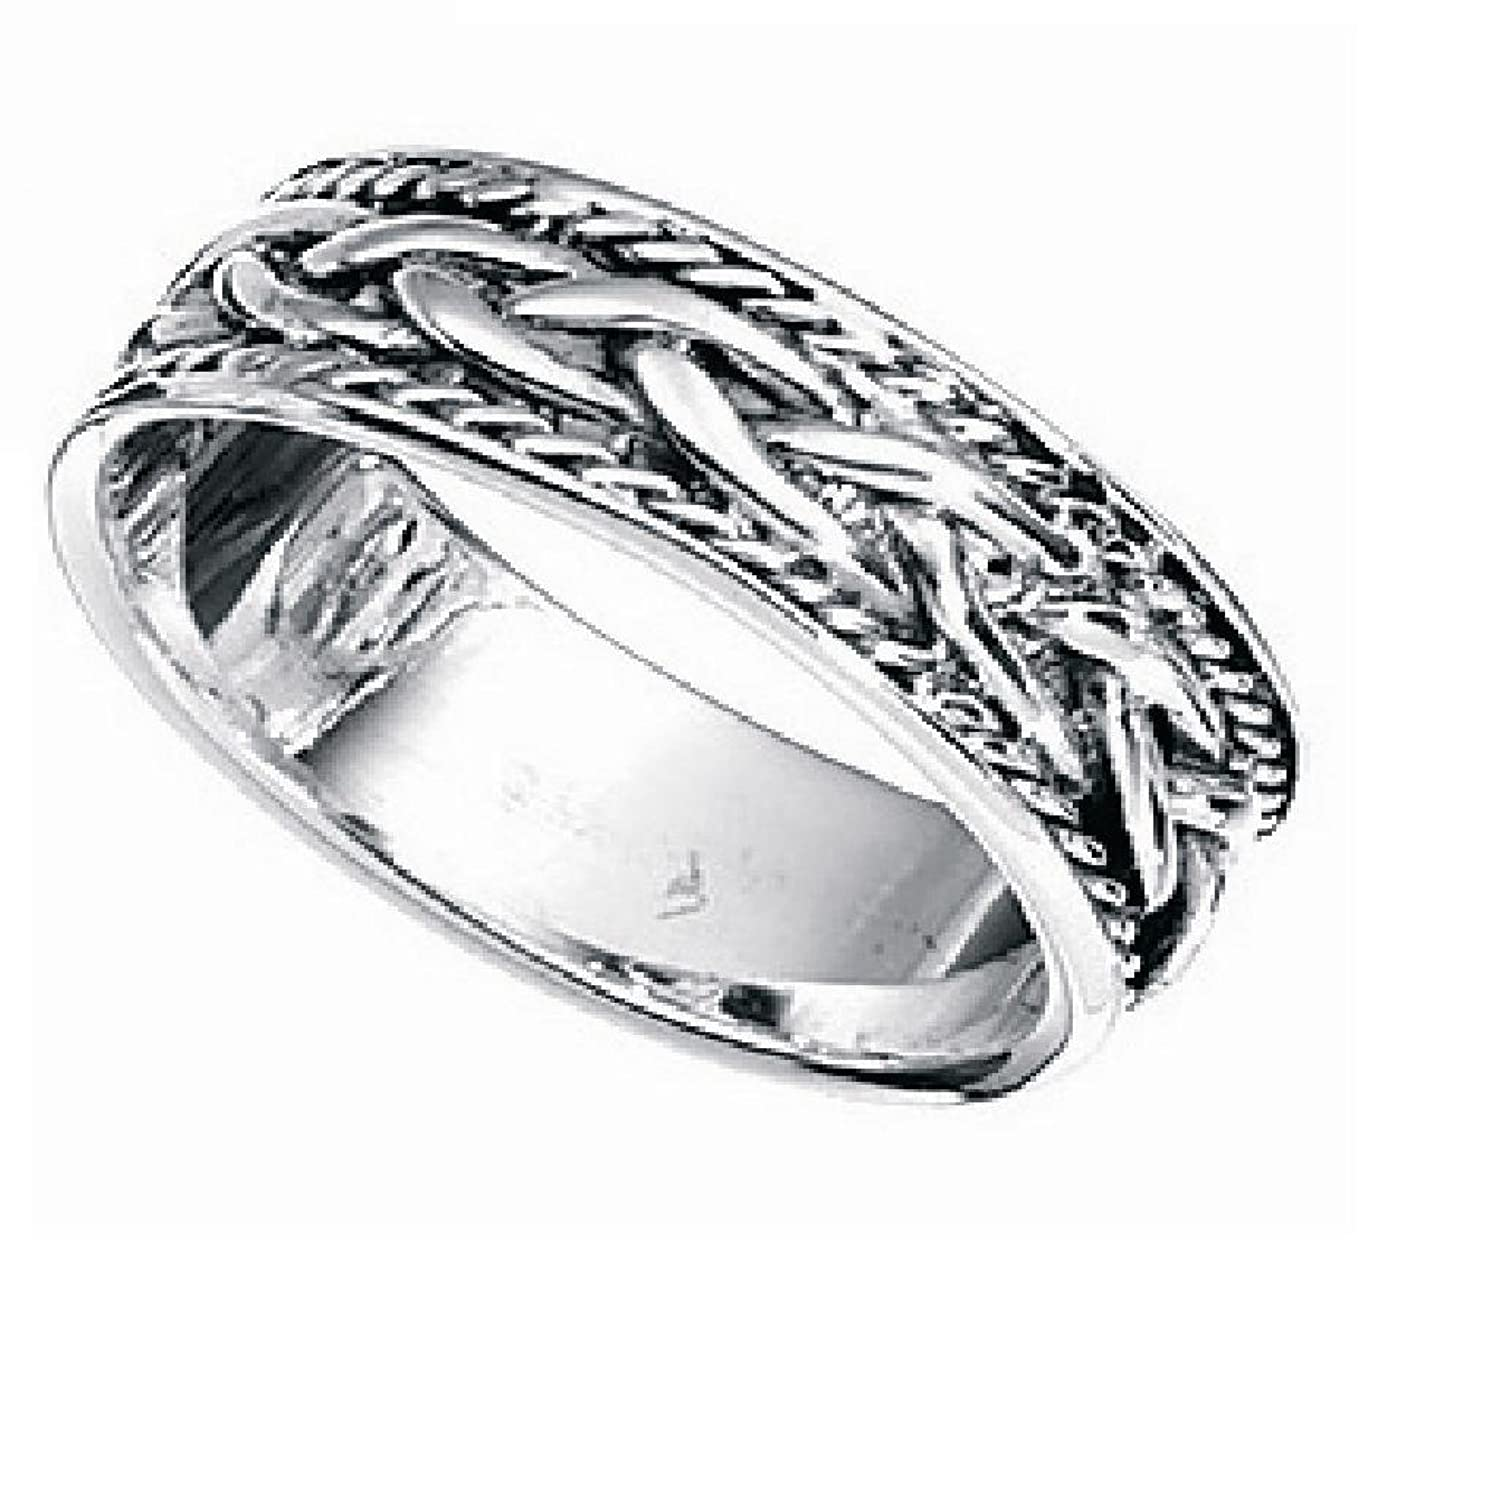 MENS GREAT THUMB RING HALLMARKED 925 SILVER Sizes P up to Z2 ...